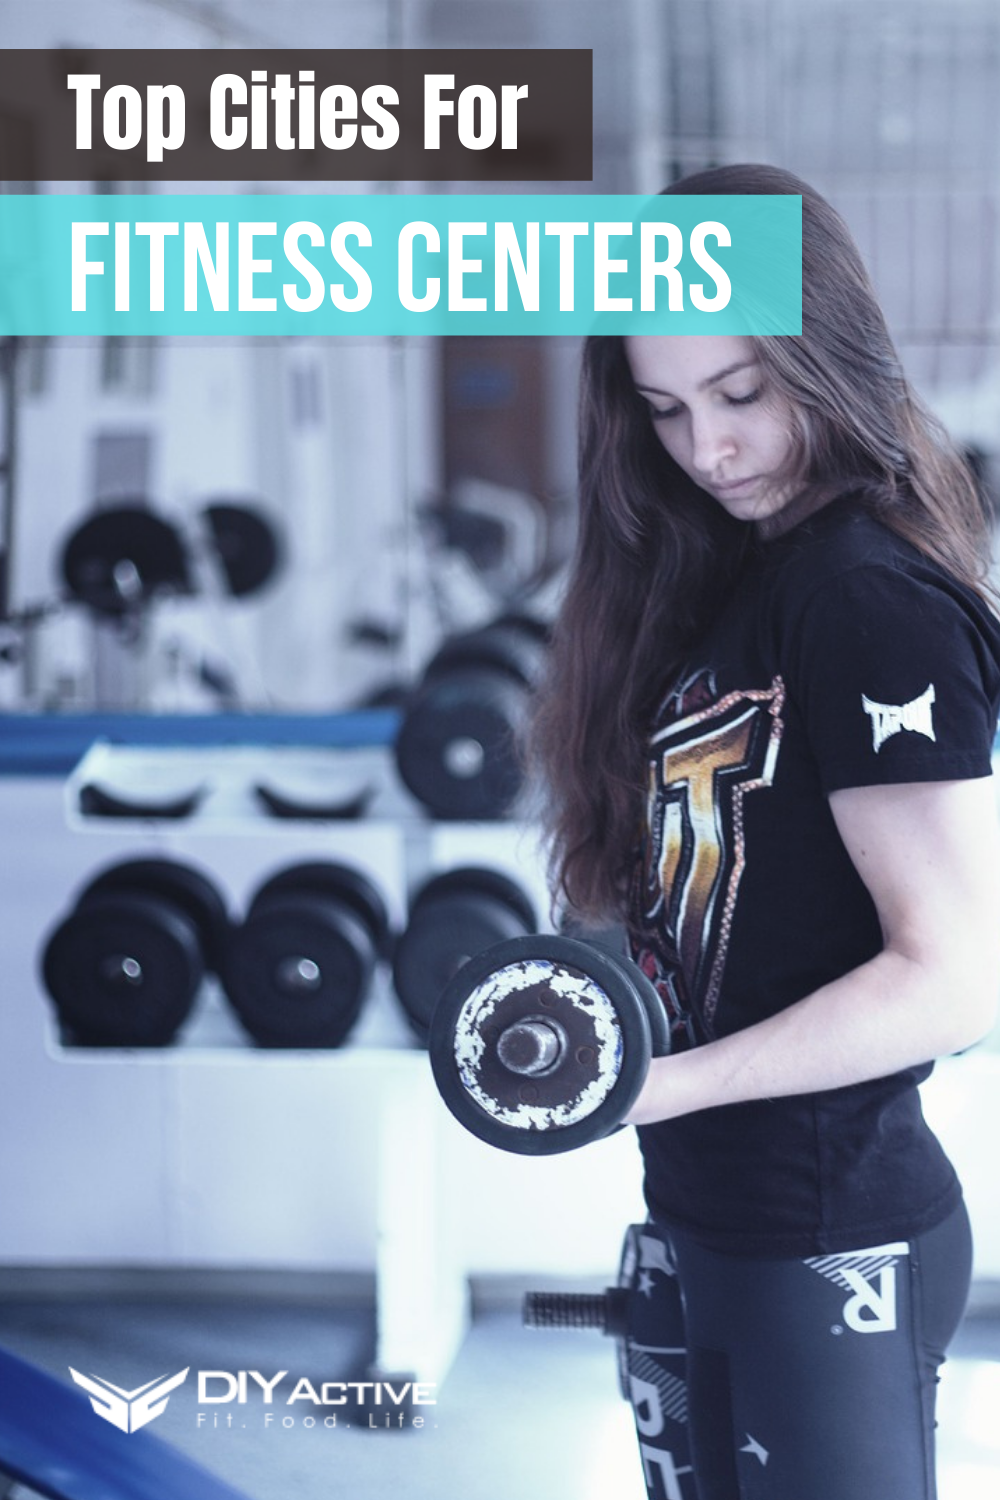 Top Cities for Fitness Centers